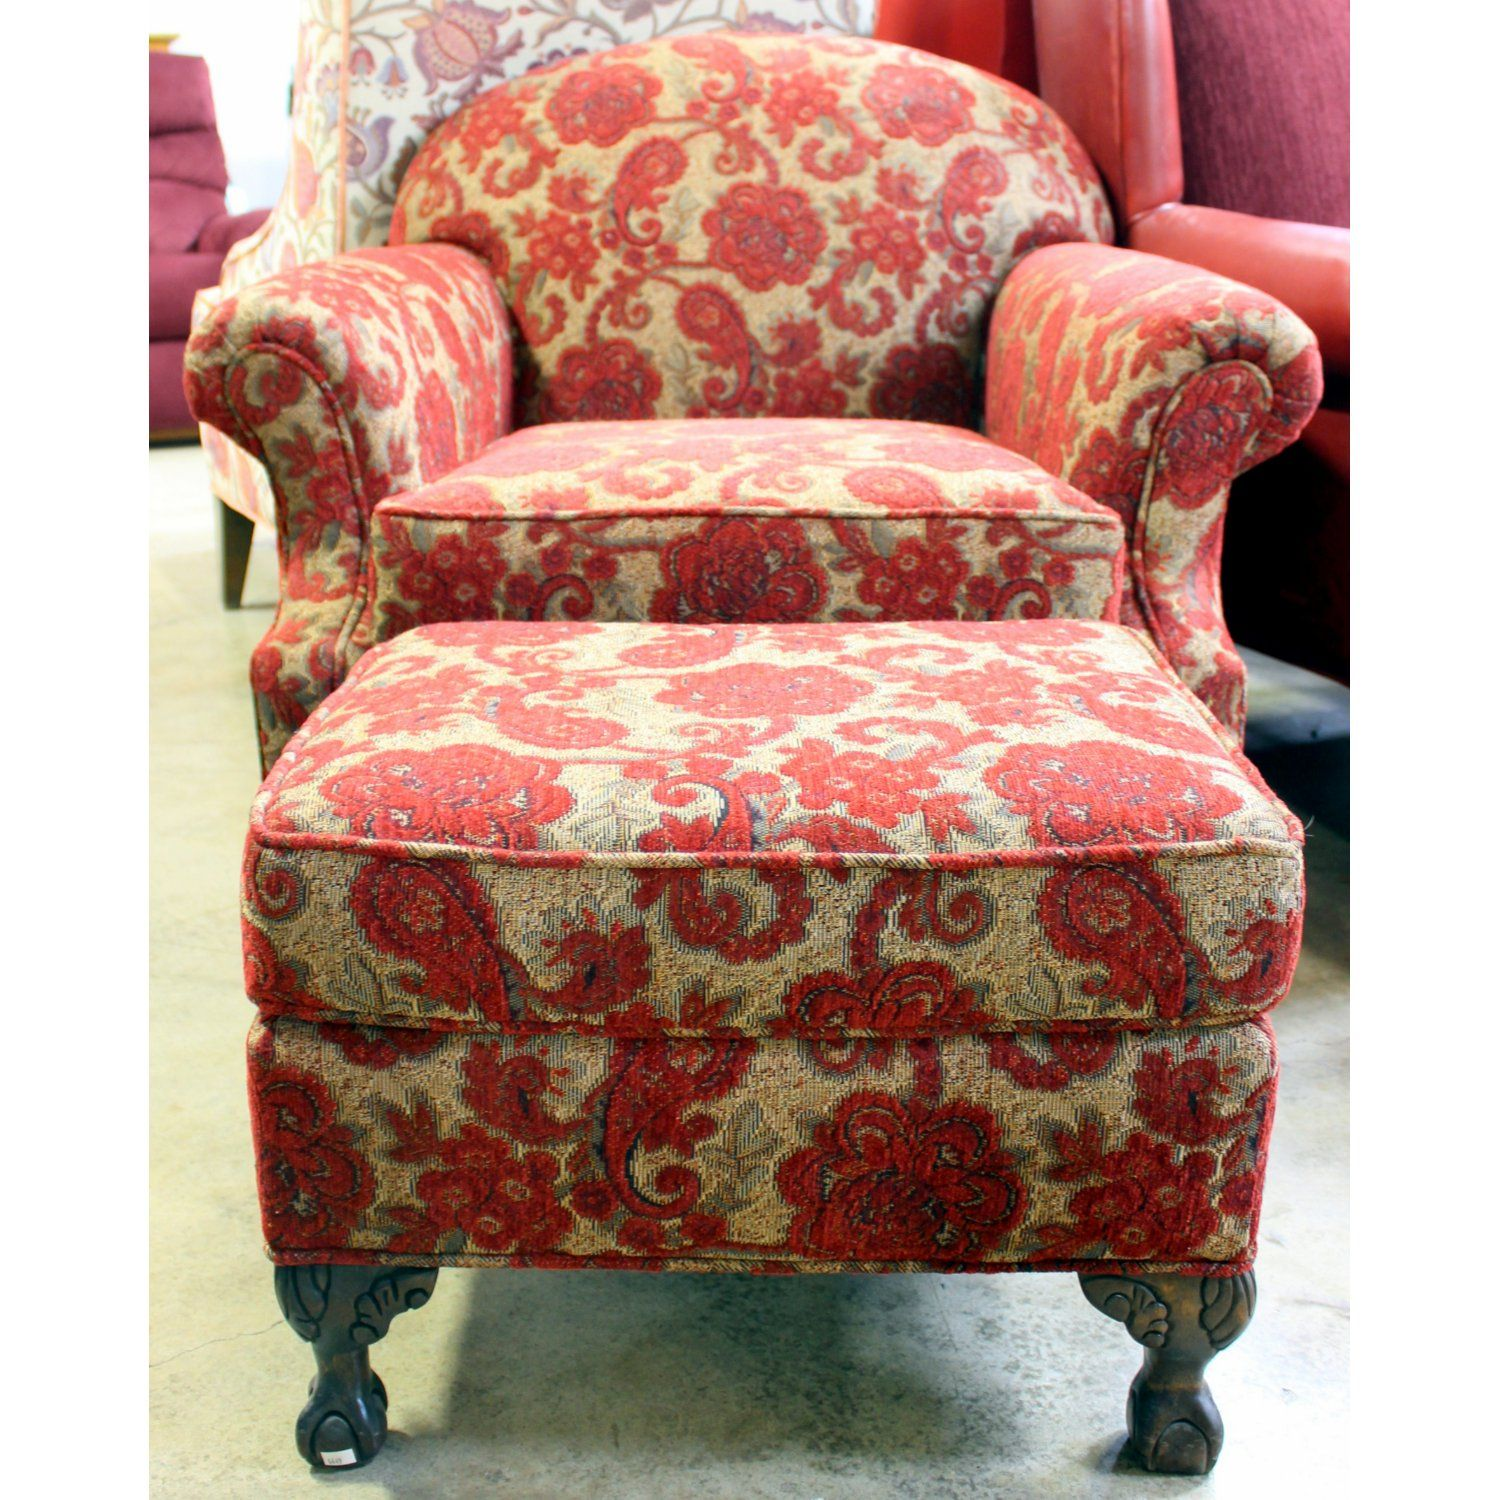 Overstuffed Chair And Ottoman Fabric Pattern And Color Ashley Furniture Overstuffed Chair And